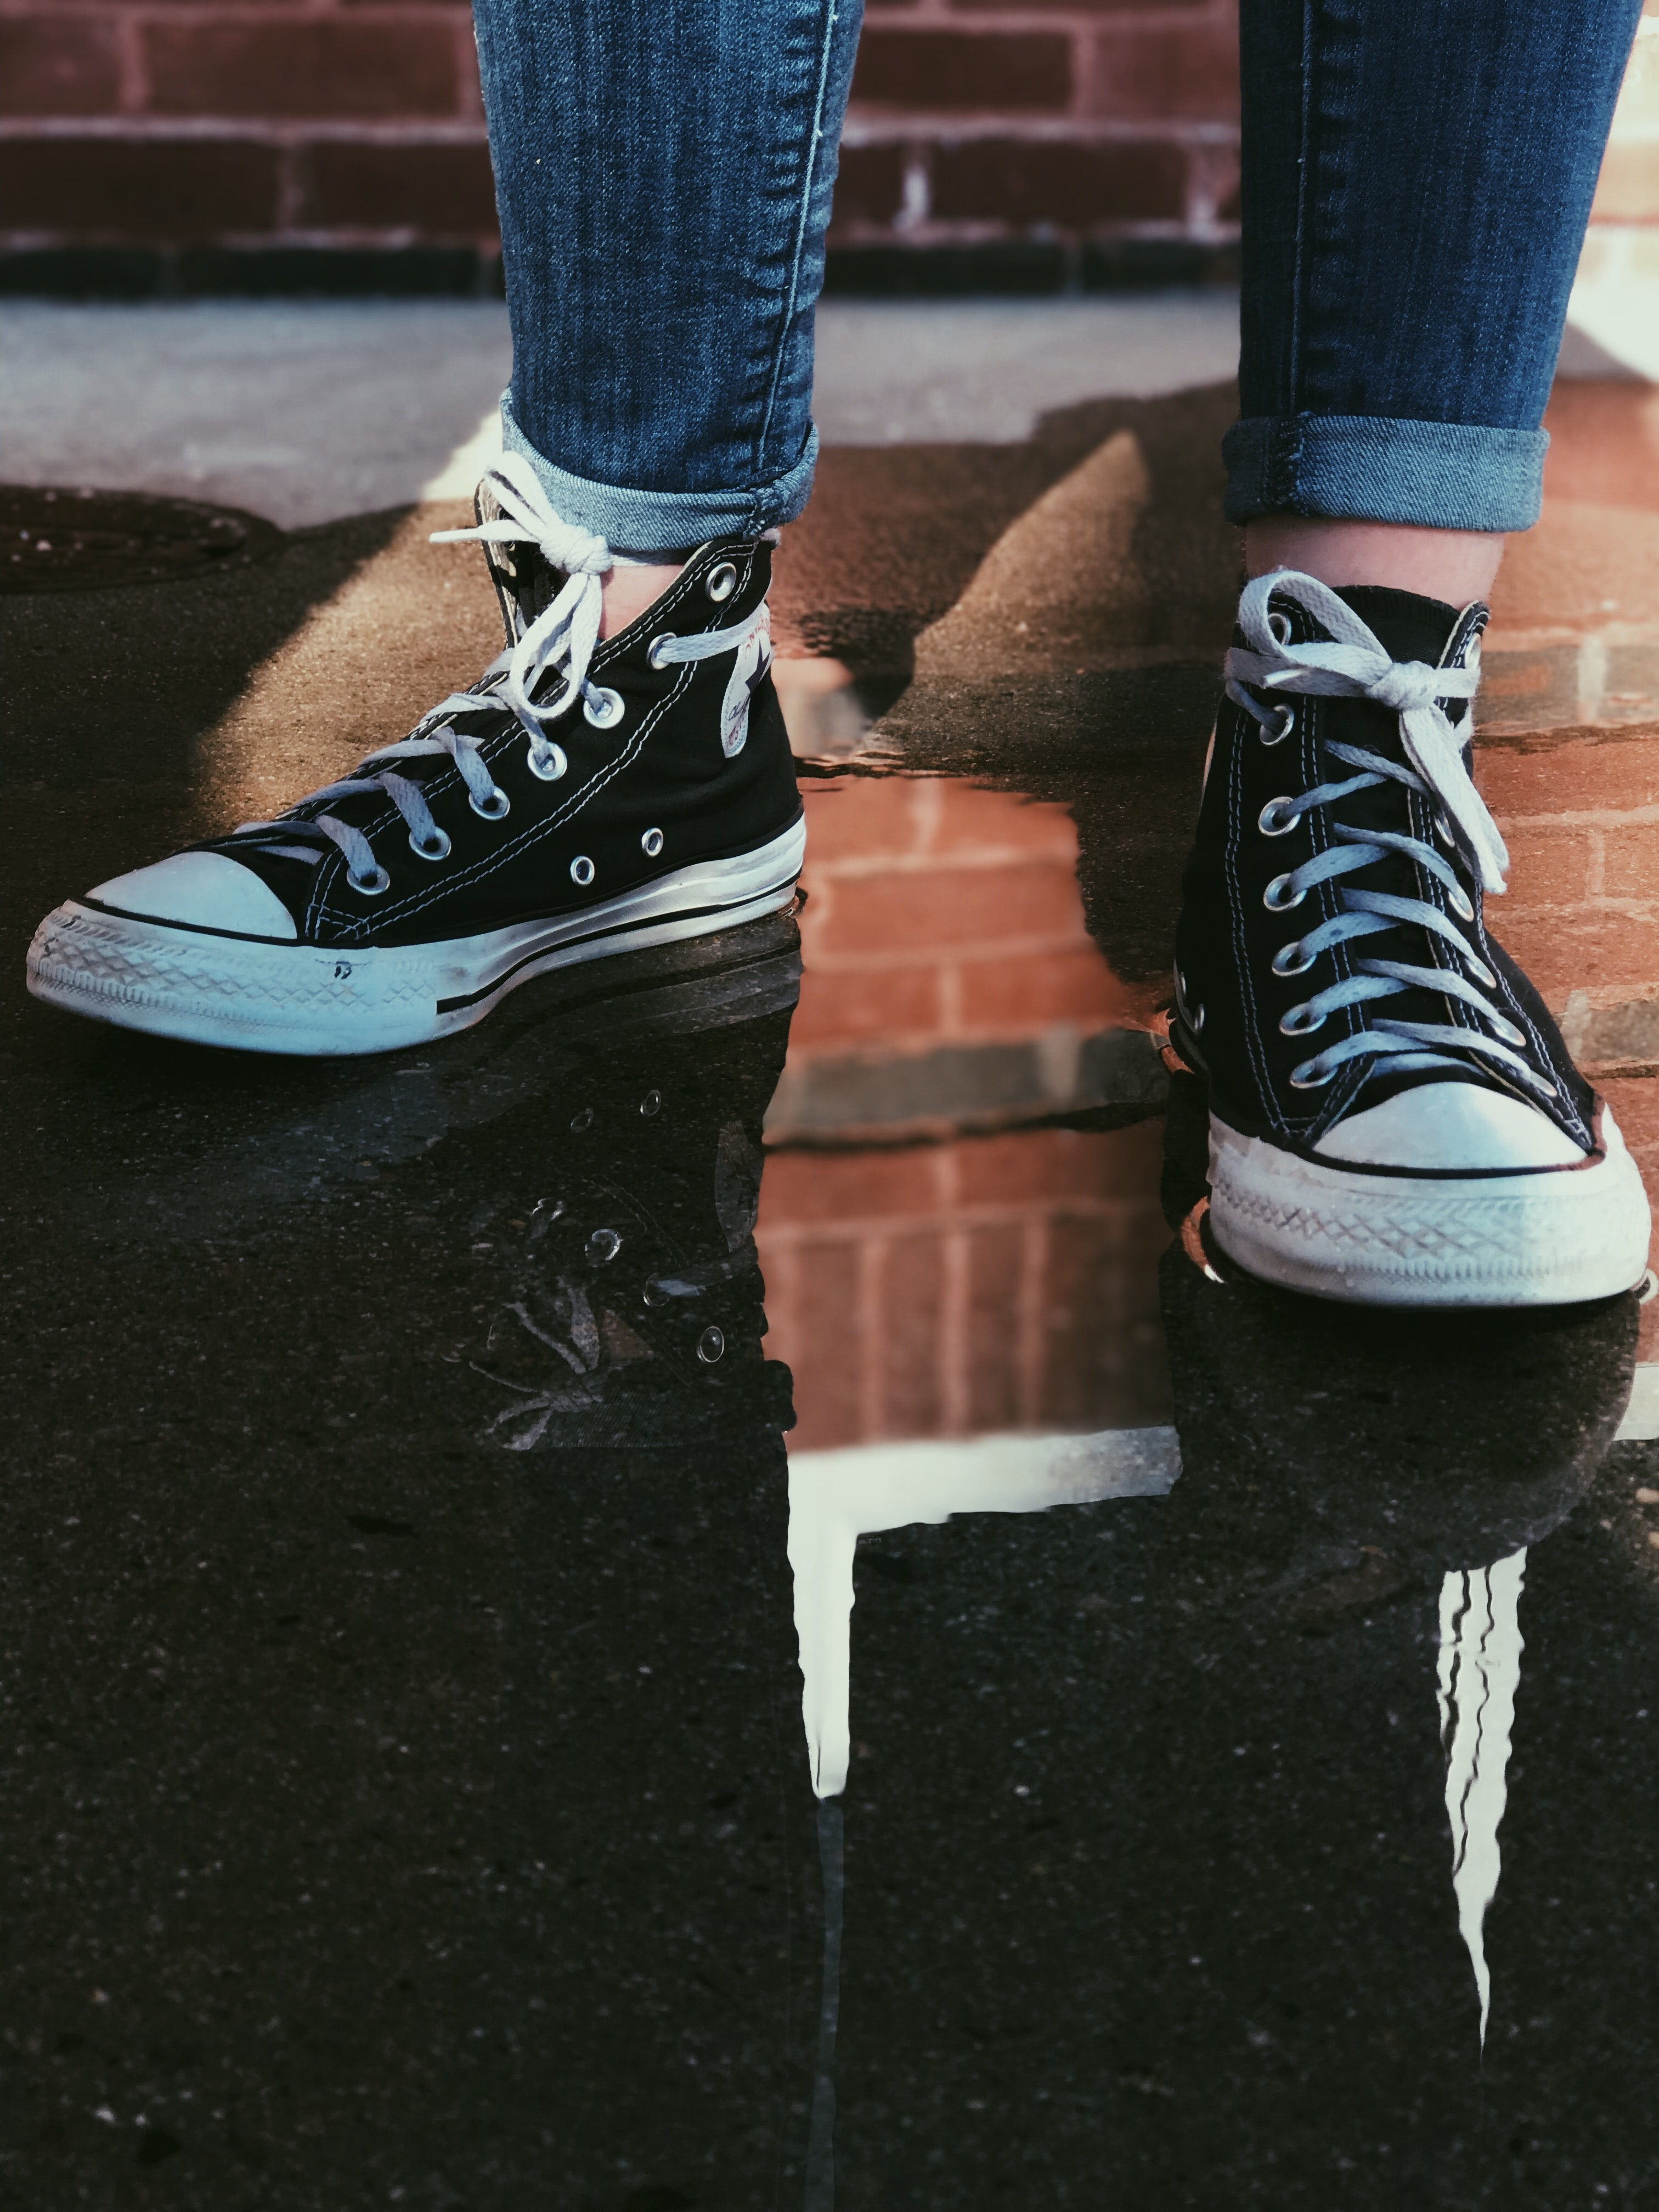 person wearing black high-top sneakers